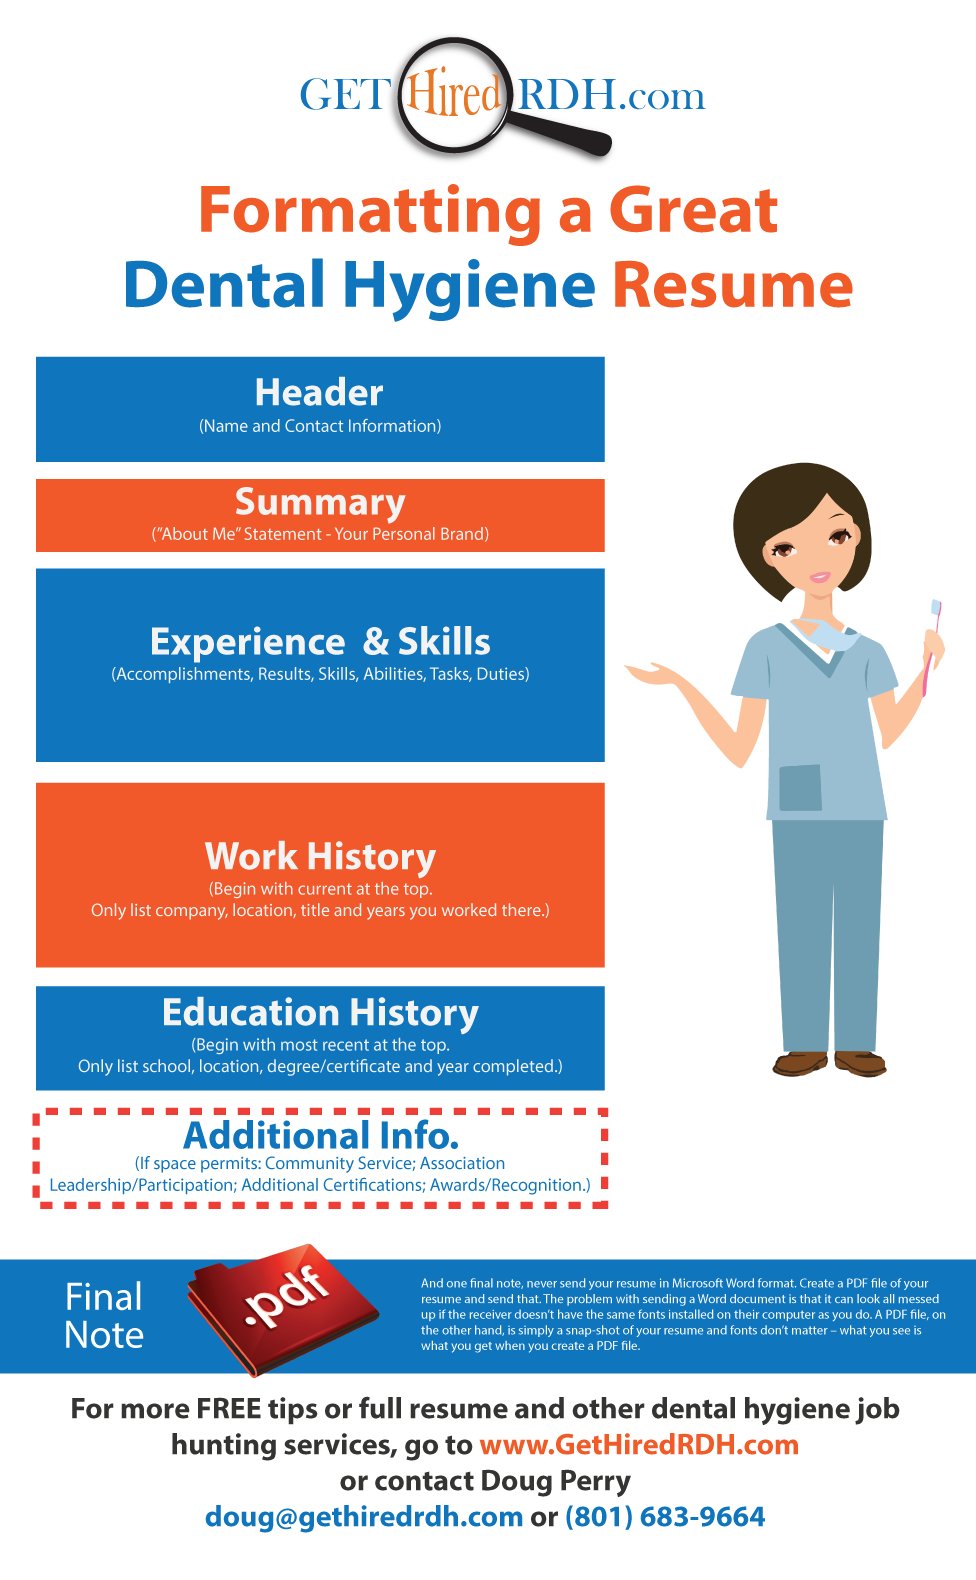 Dental Hygiene Resume Examples | Building A Great Dental Hygiene Resume Hygiene Edge